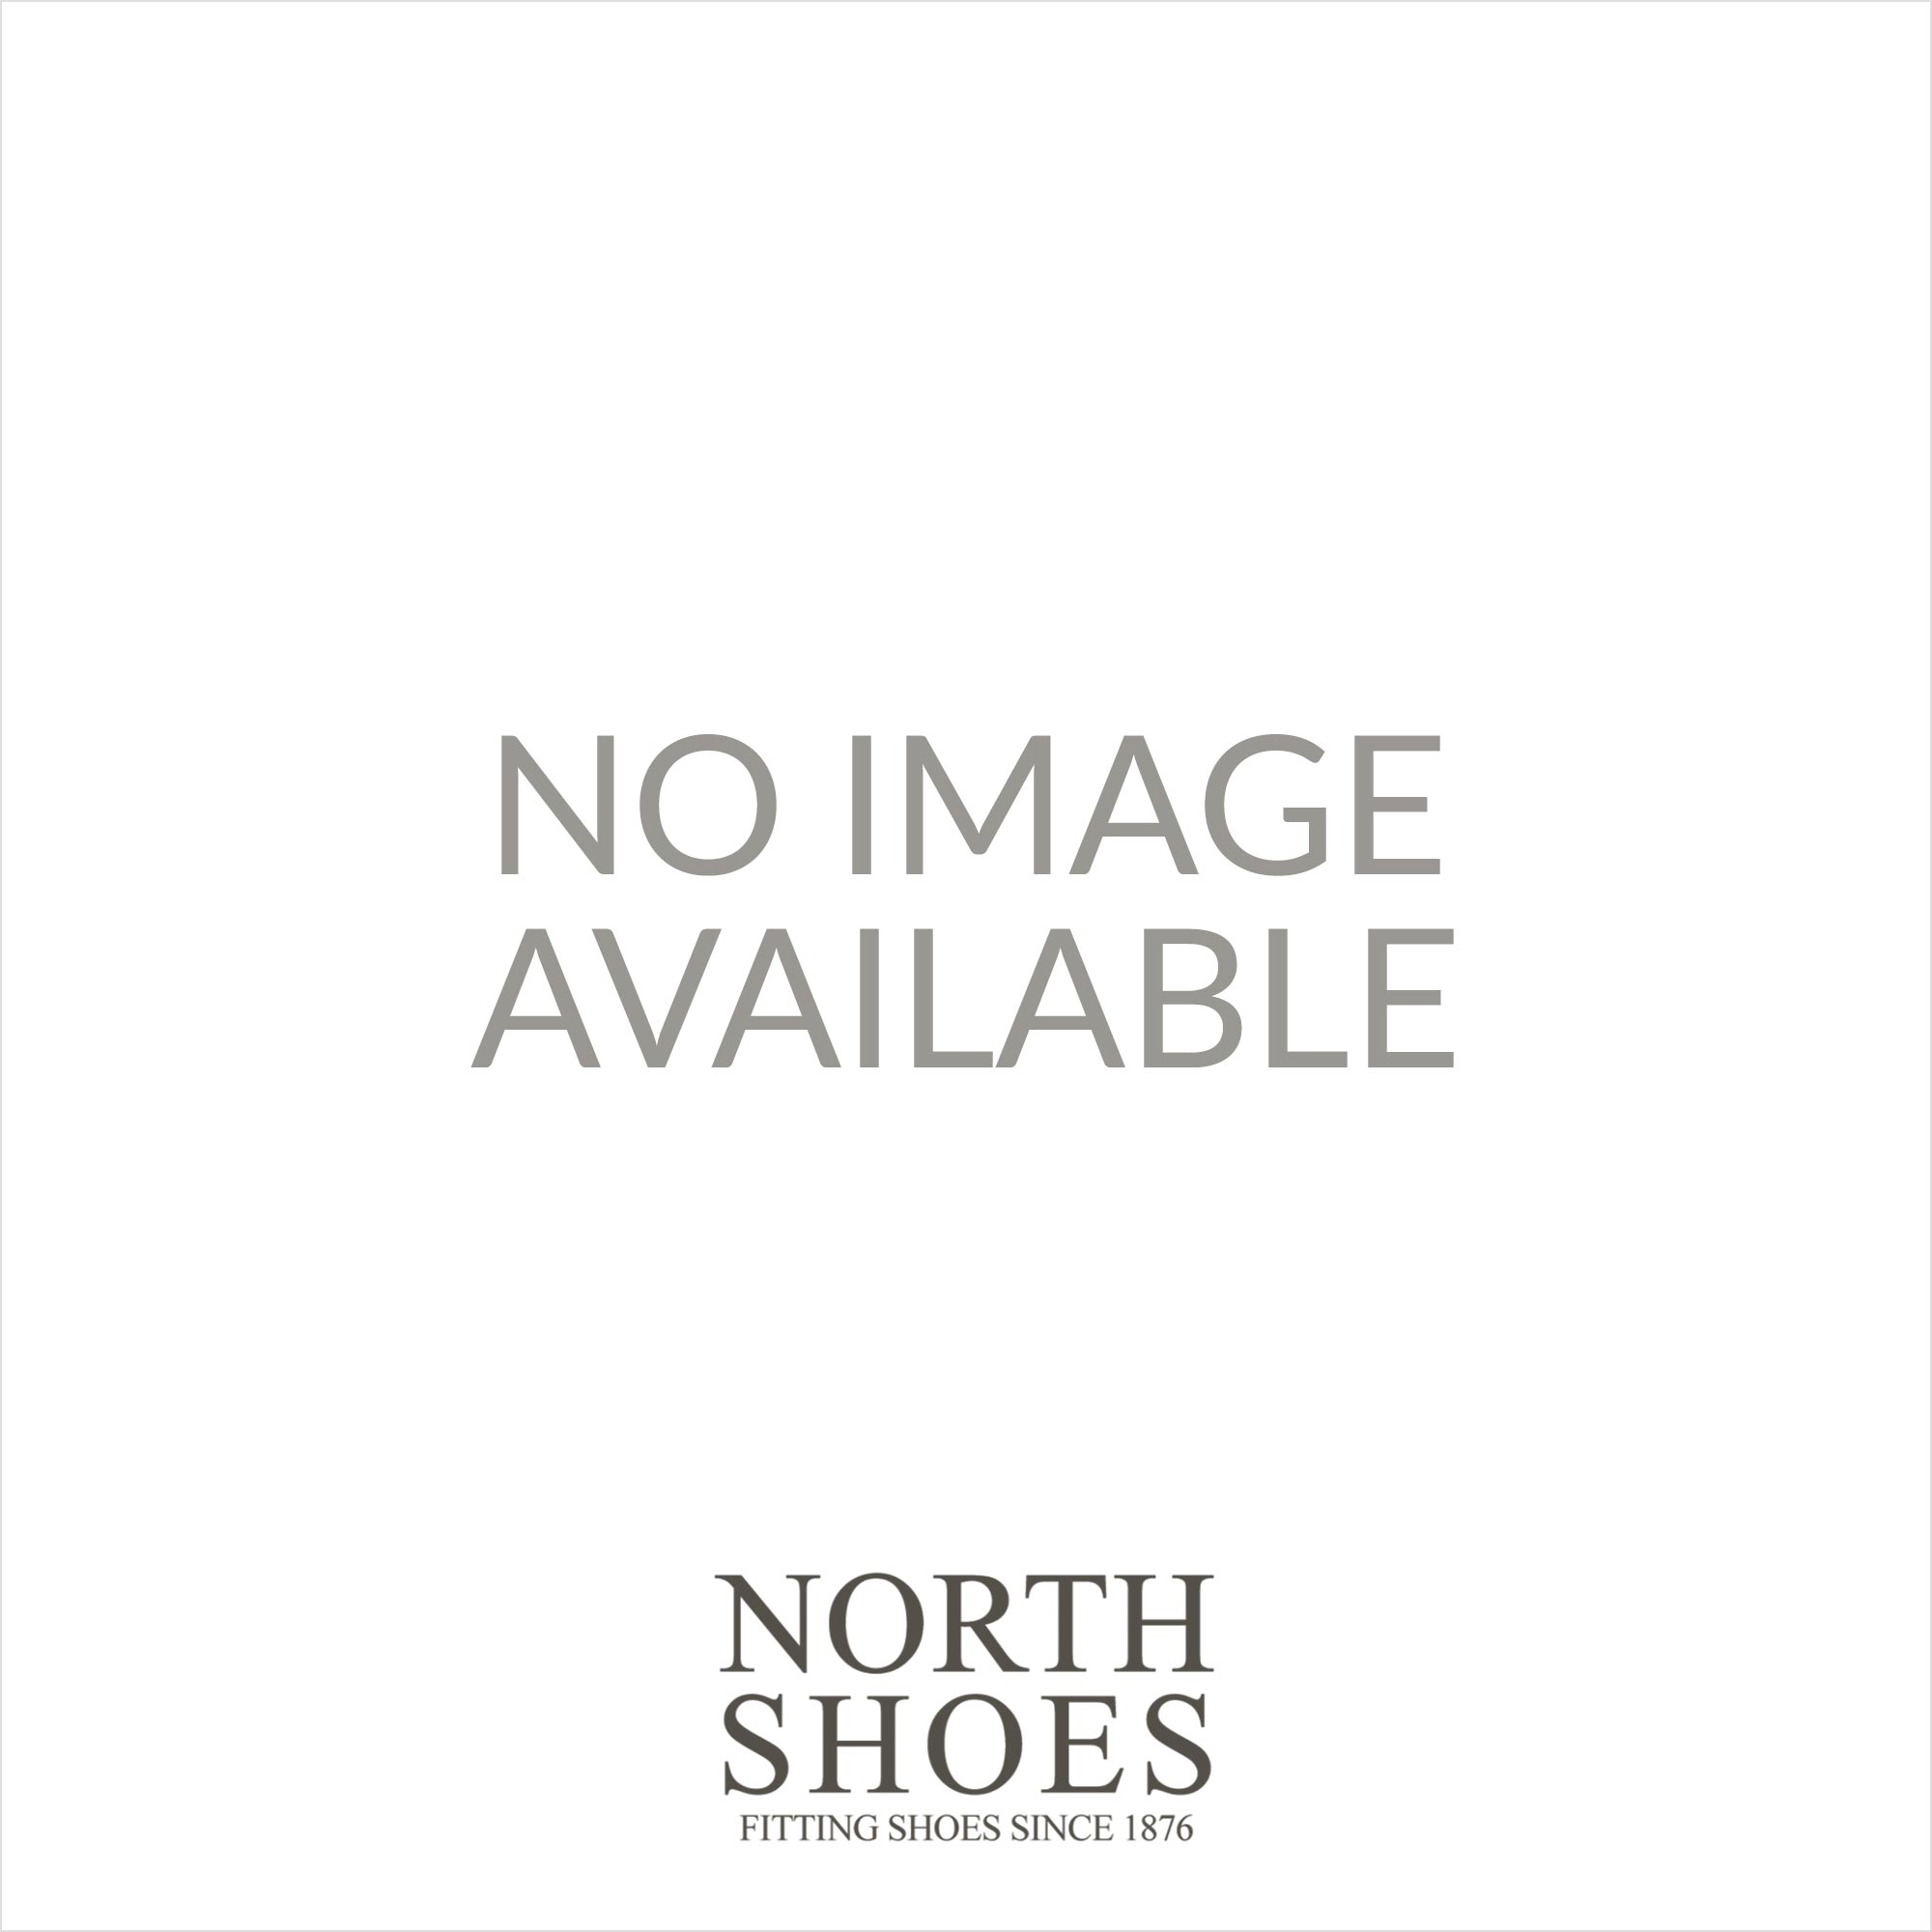 a761c2027ef50 Mens Clarks Griffin Mia Black Patent Leather Womens T Bar Fringed ...